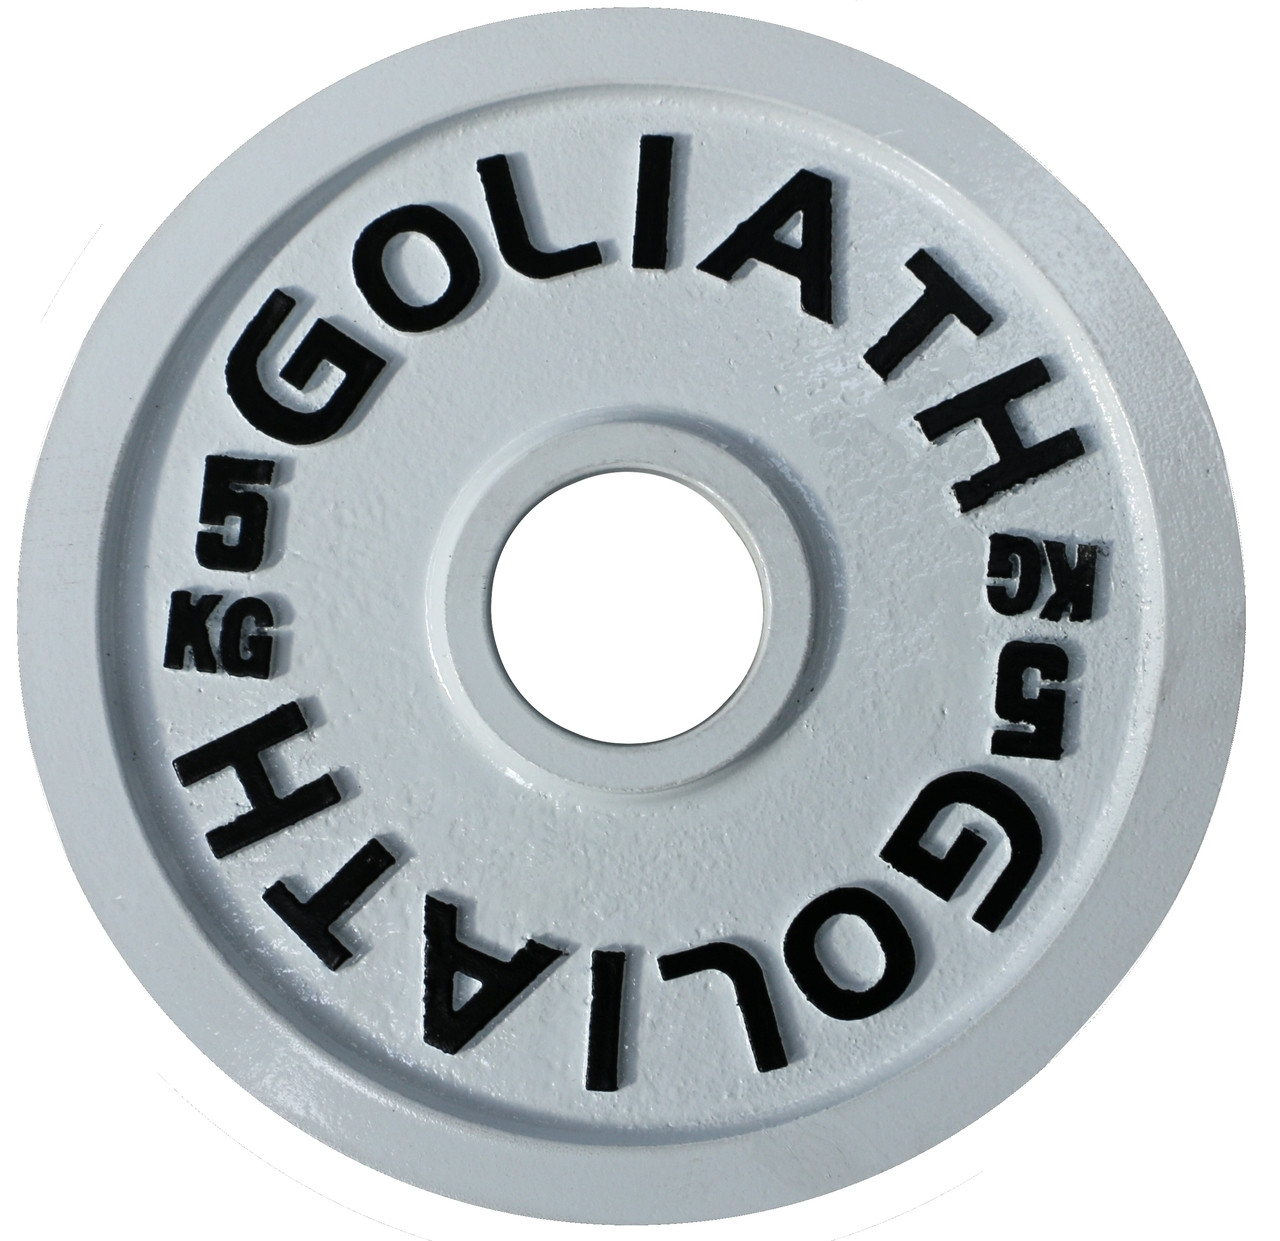 Goliath Calibrated Powerlifting Plate - 5kg (PAIR).